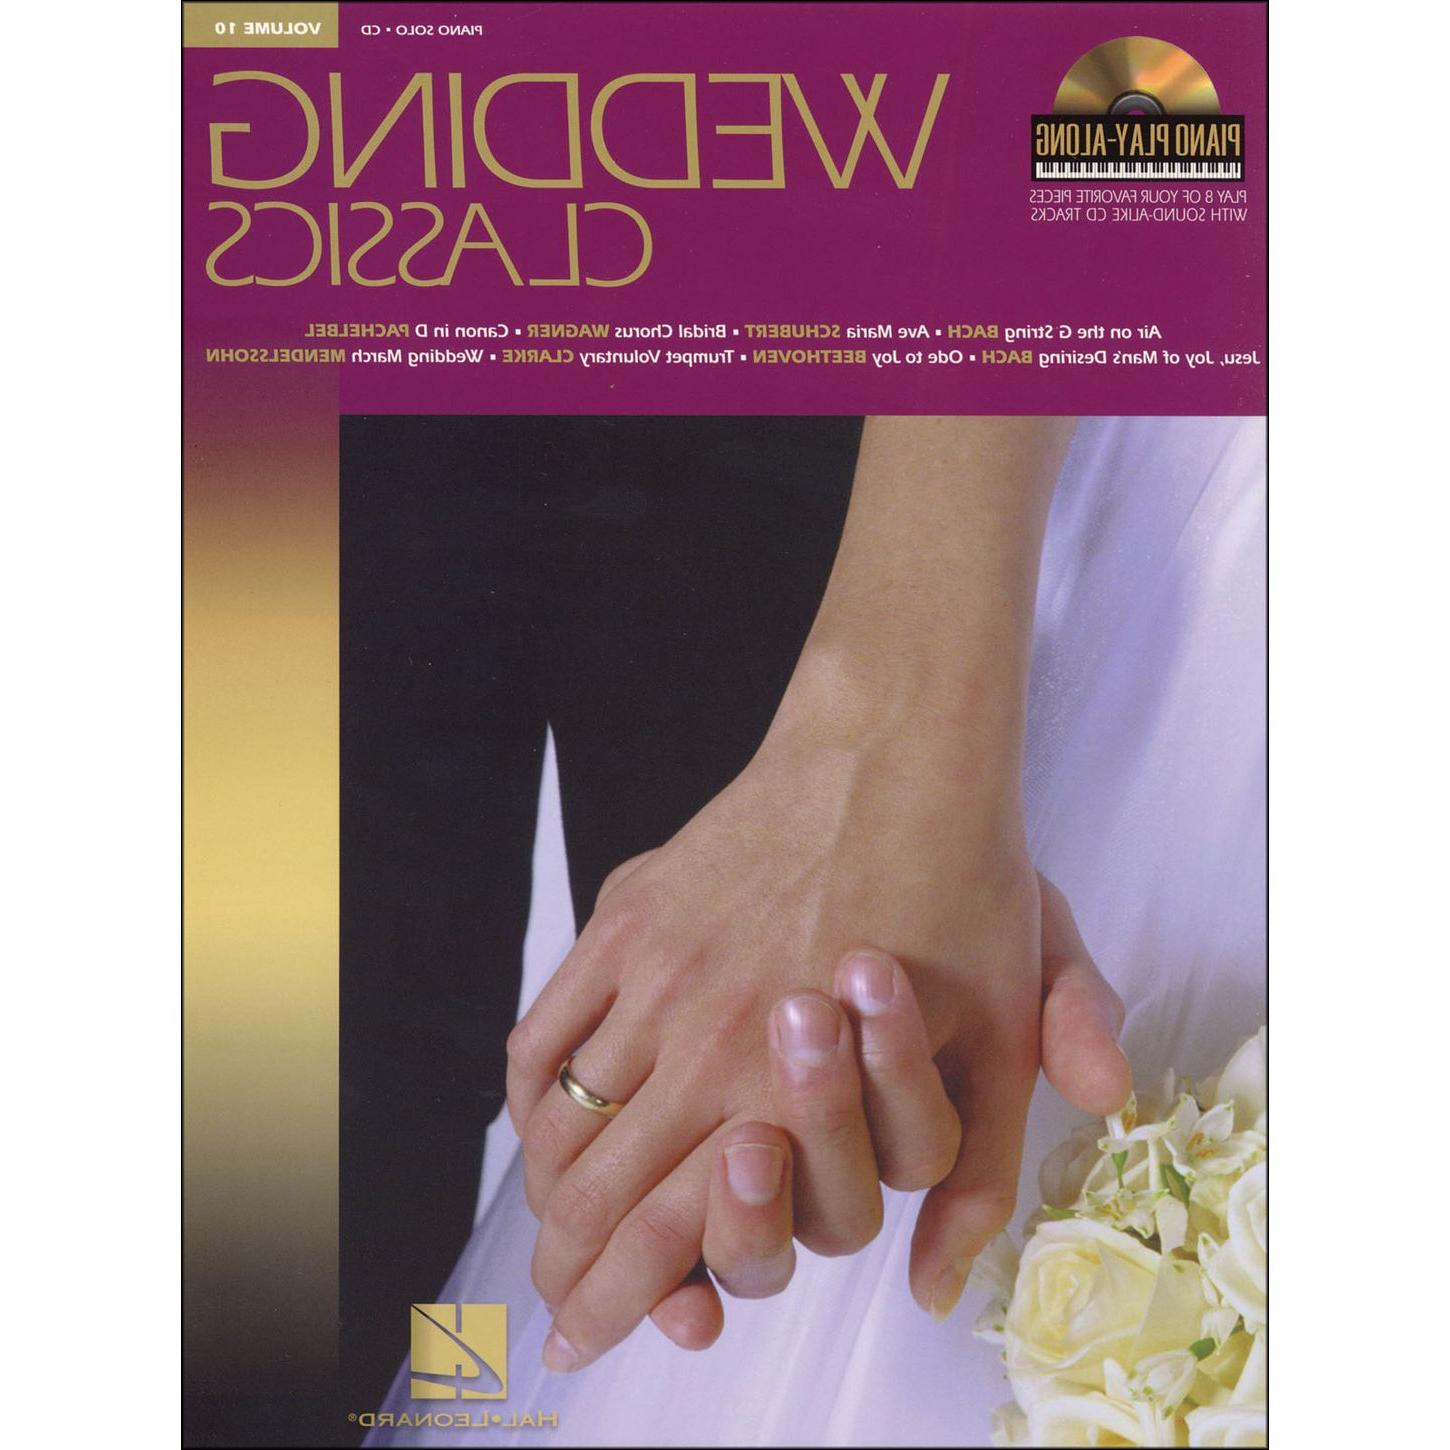 Hal Leonard Wedding Classics Book CD Volume 10 Piano Play Along arranged for